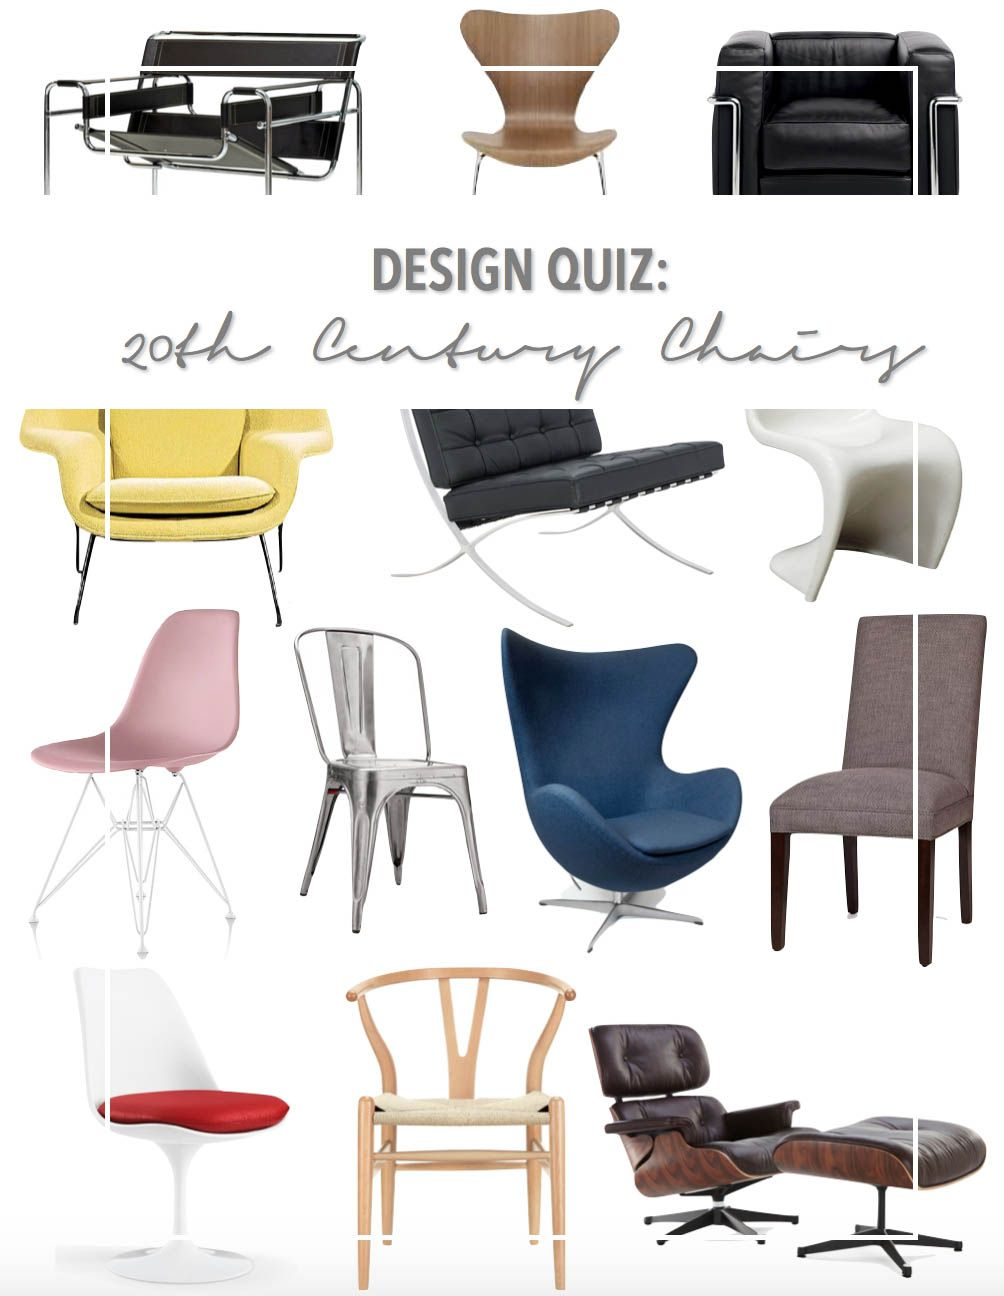 Design Quiz Famous 20th Century Chairs Midcentury Modern